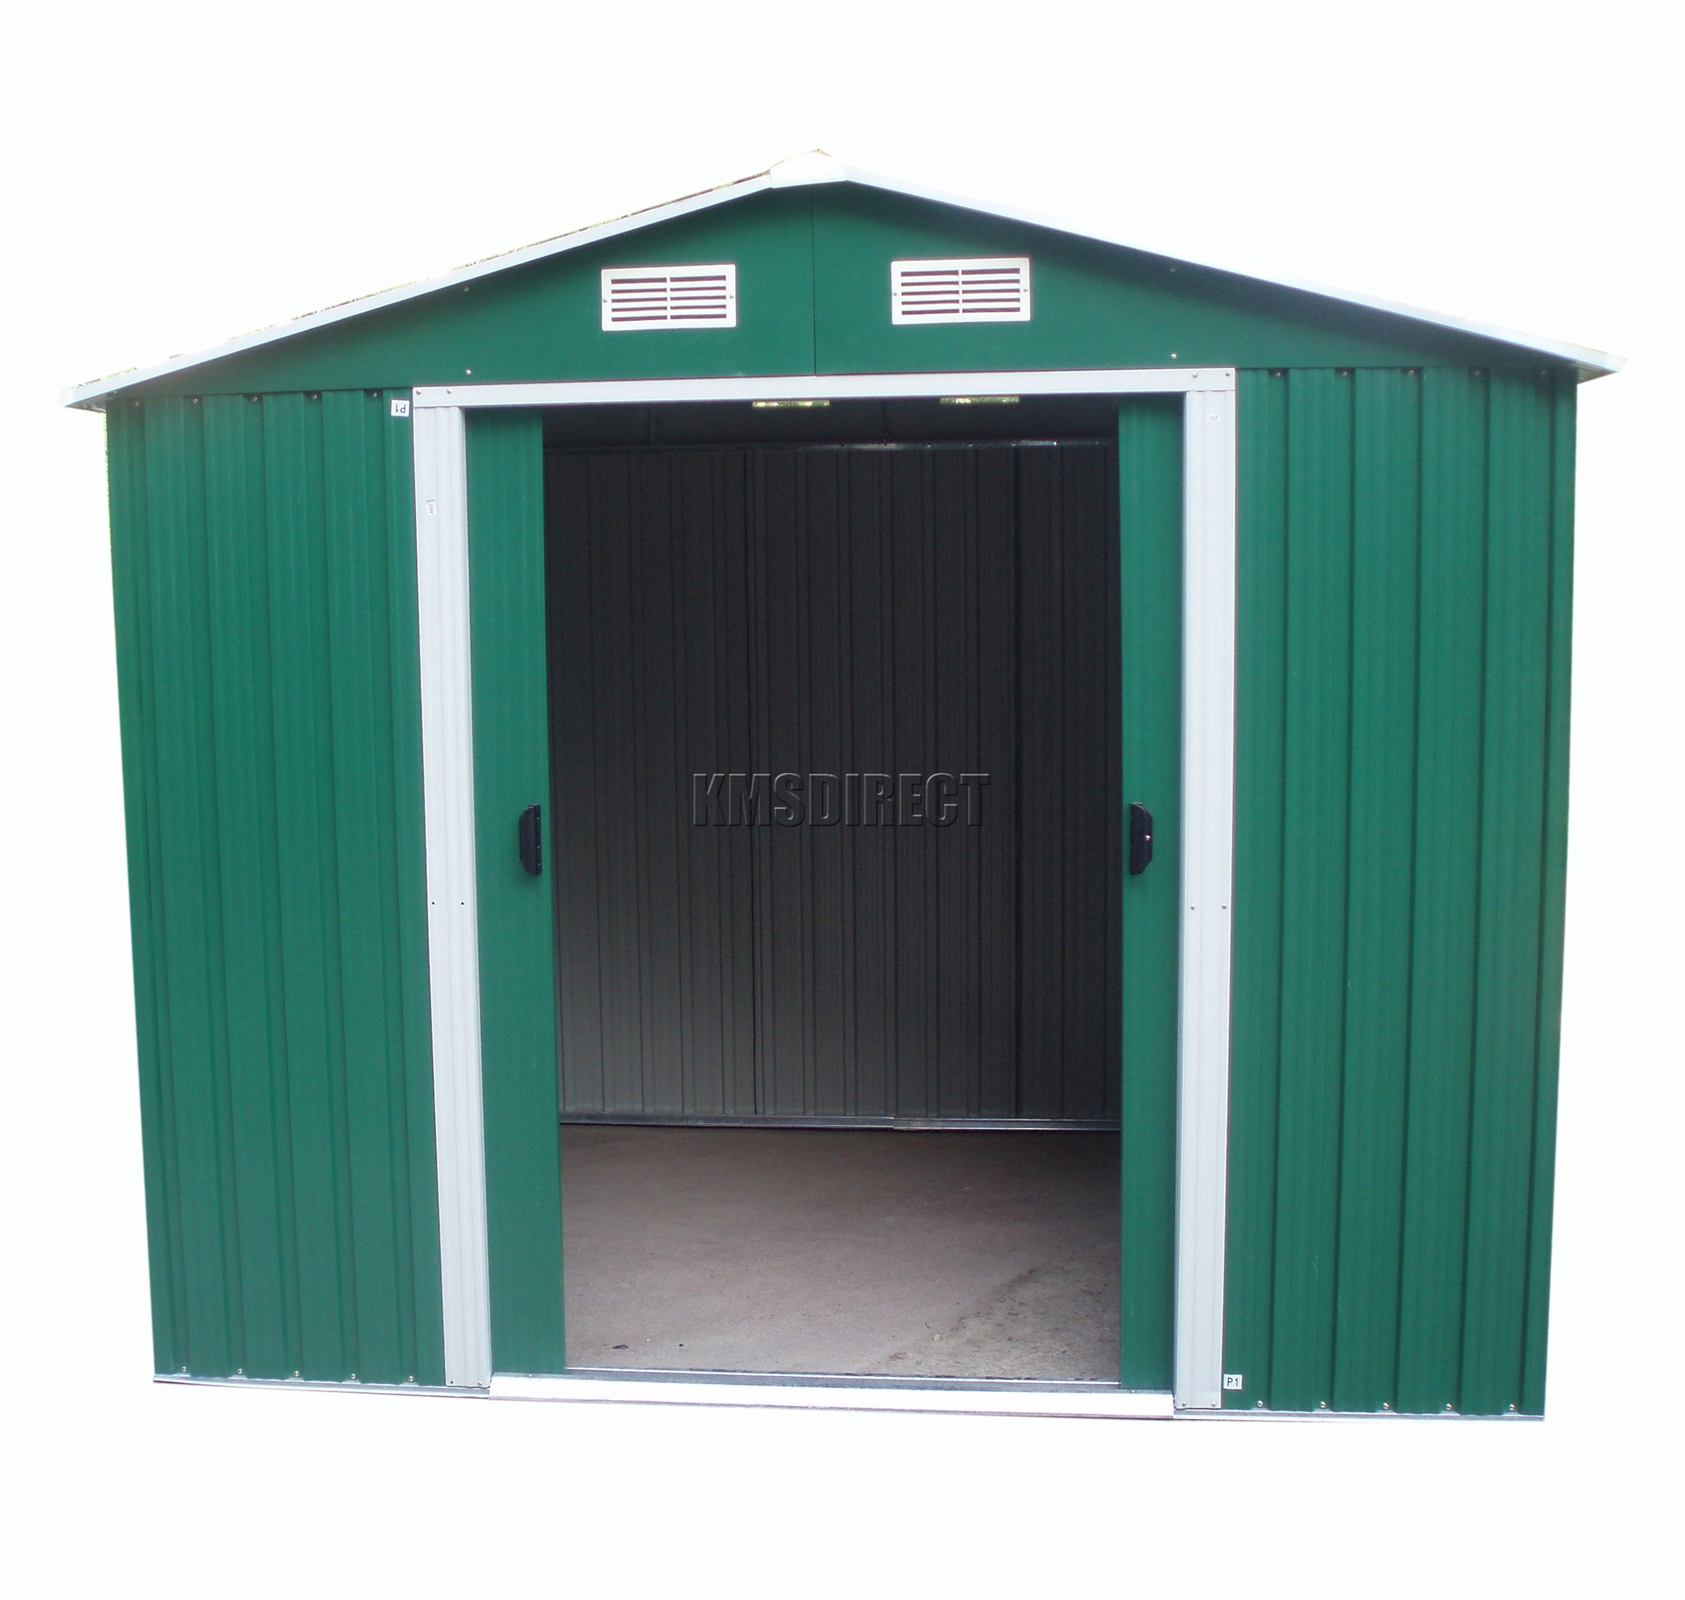 Sentinel Foxhunter 10 X 8ft Garden Shed Metal Apex Outdoor Storage Foundation Green Kms